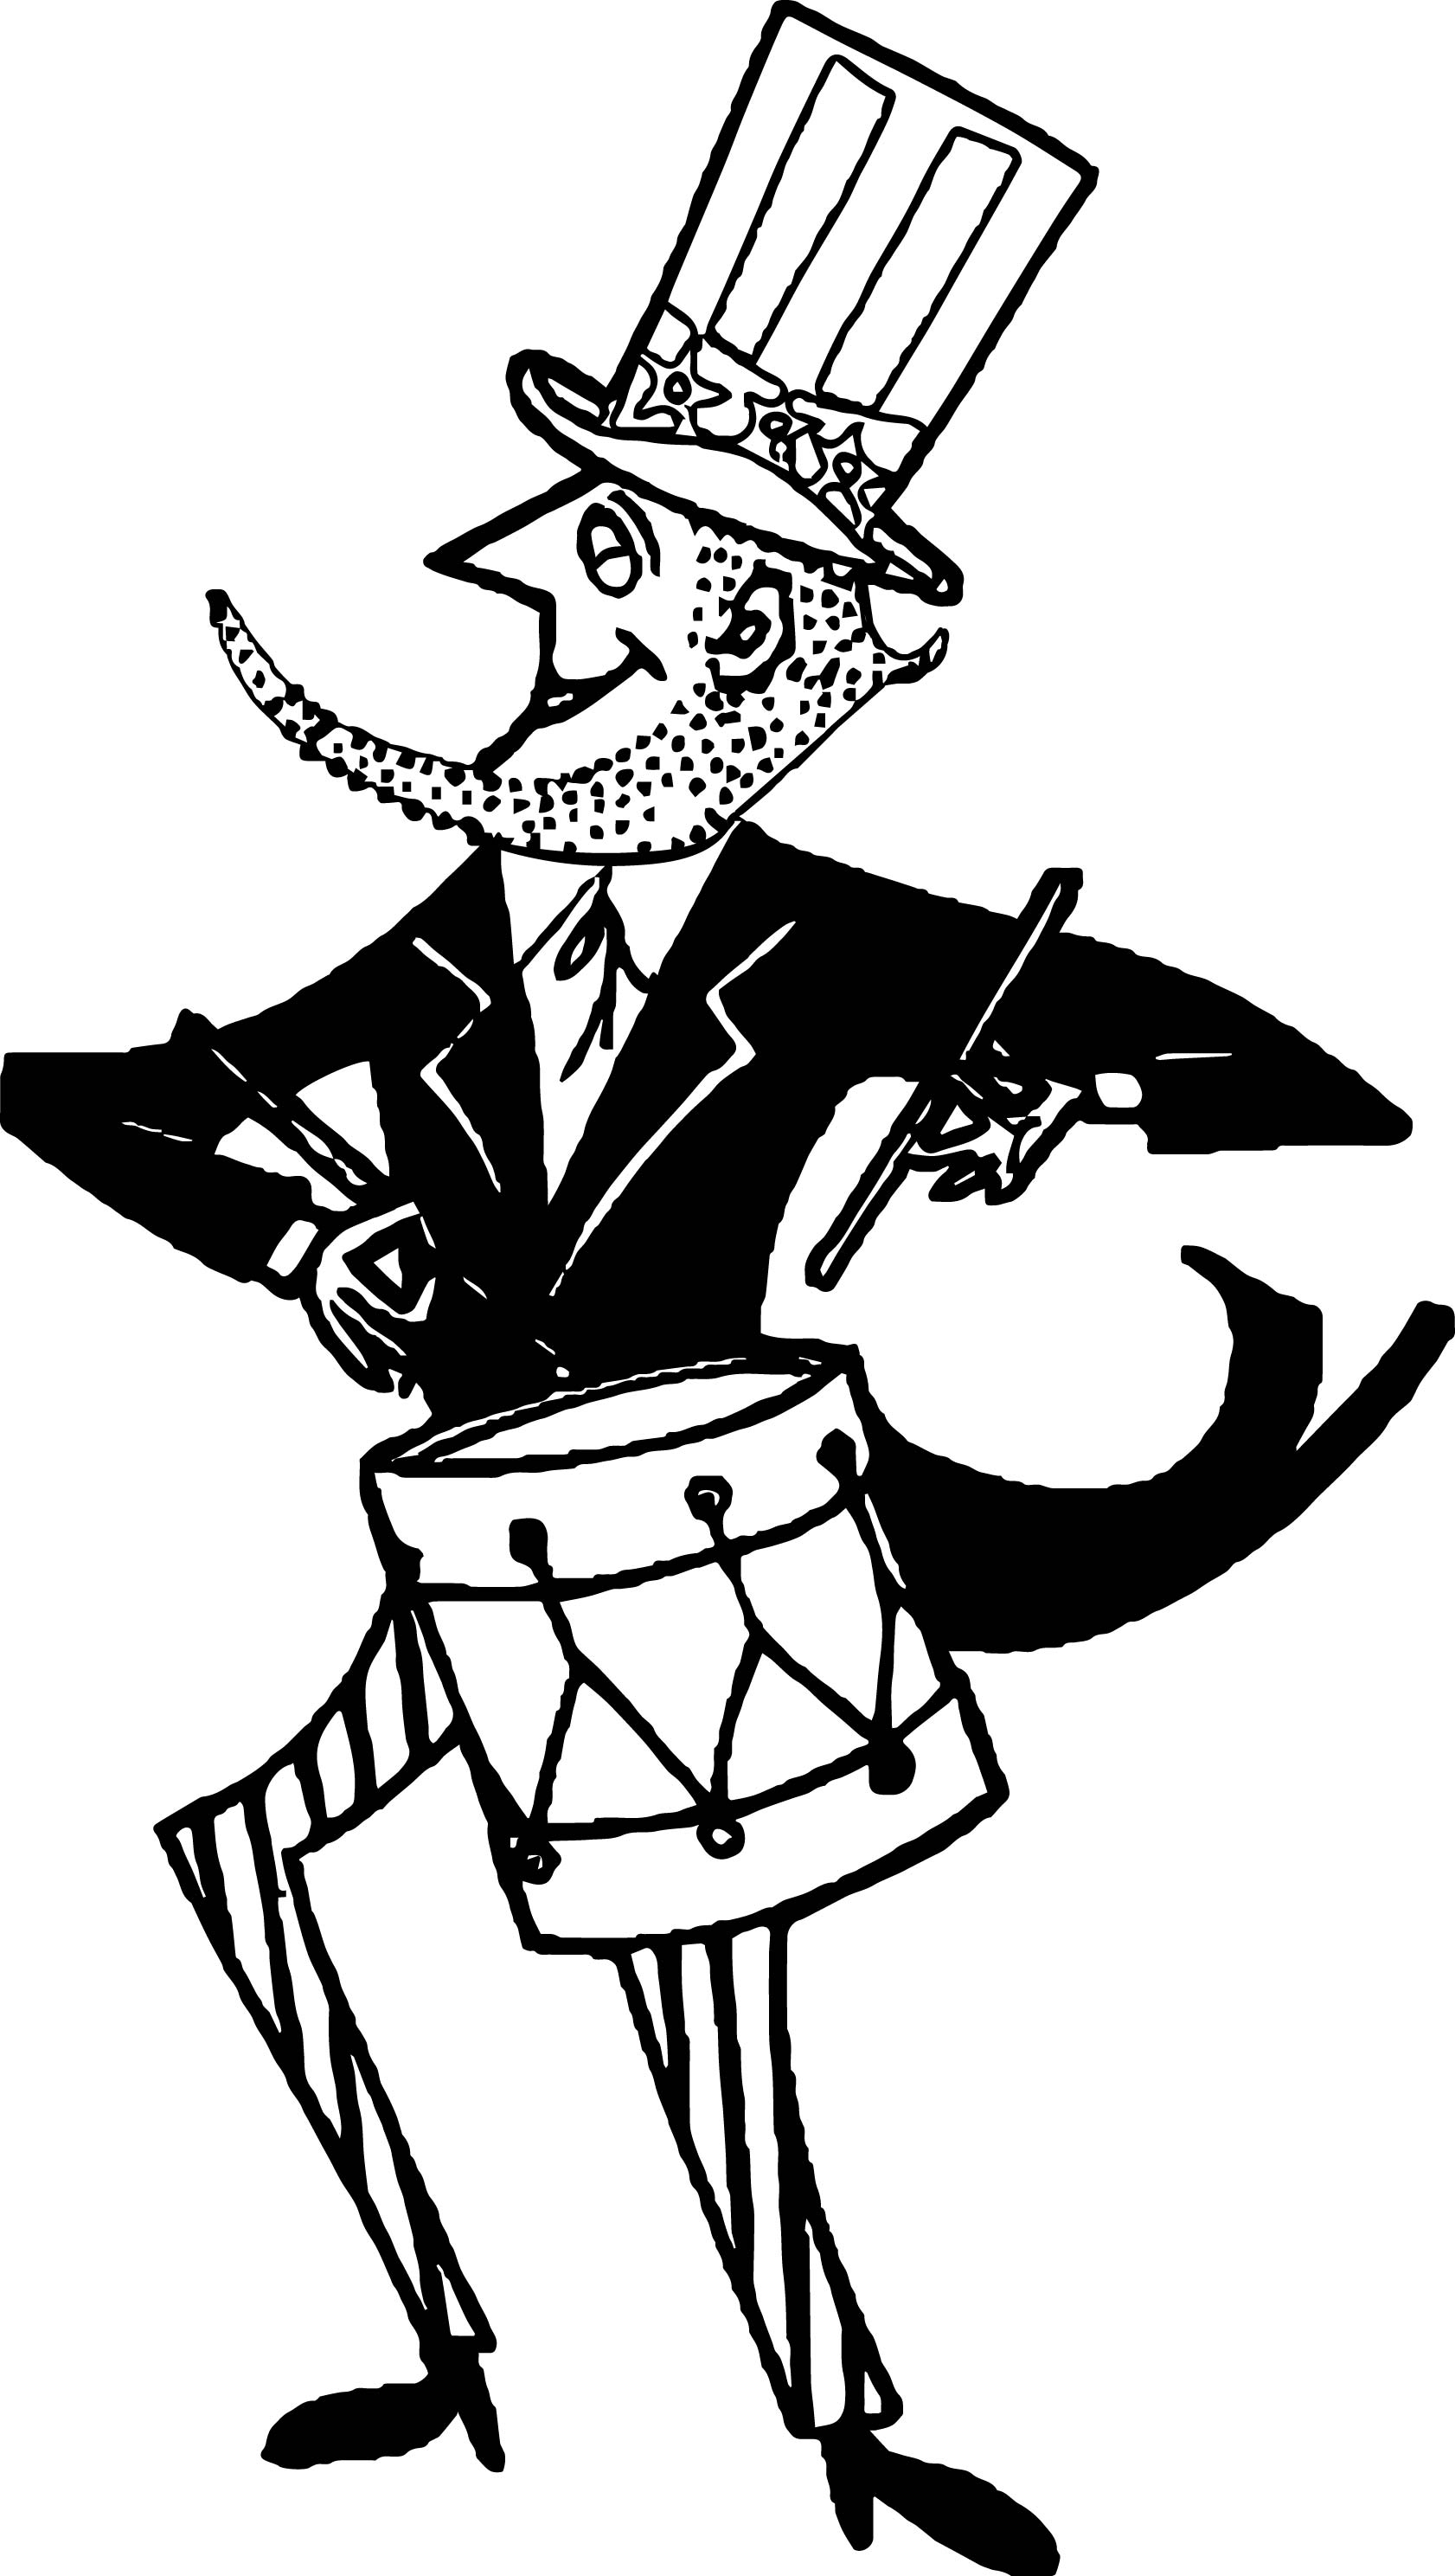 American Revolution Uncle Sam American Patriotic Drummer Coloring Page